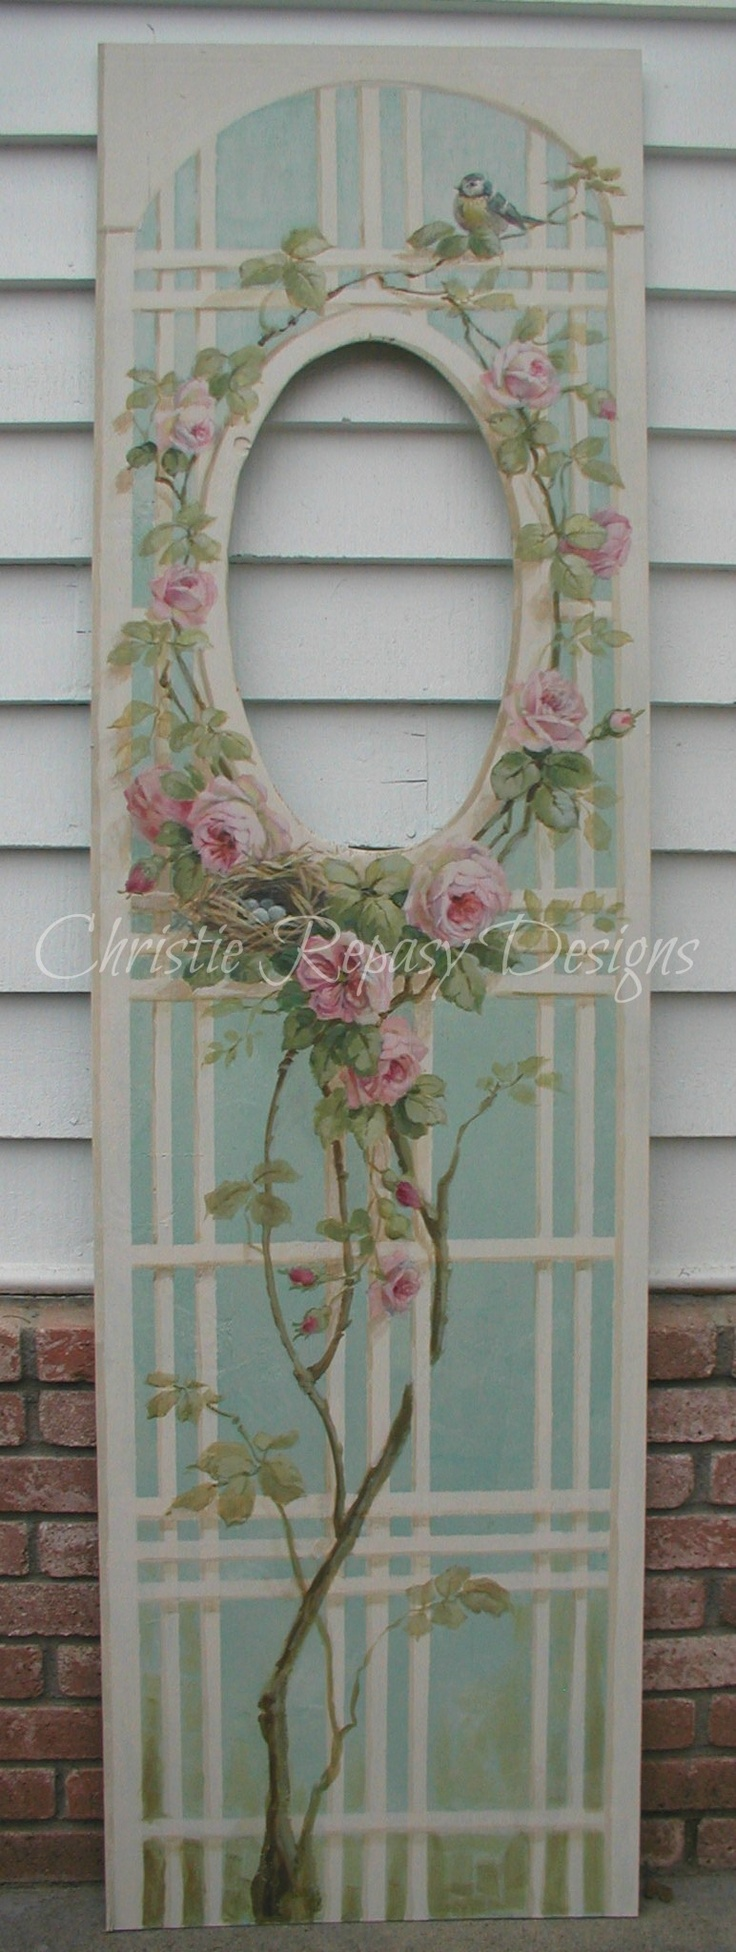 C.Repasy~ painted rose lattice for my booth at The Vintage Marketplace show March 1st,2nd&3rd 2013